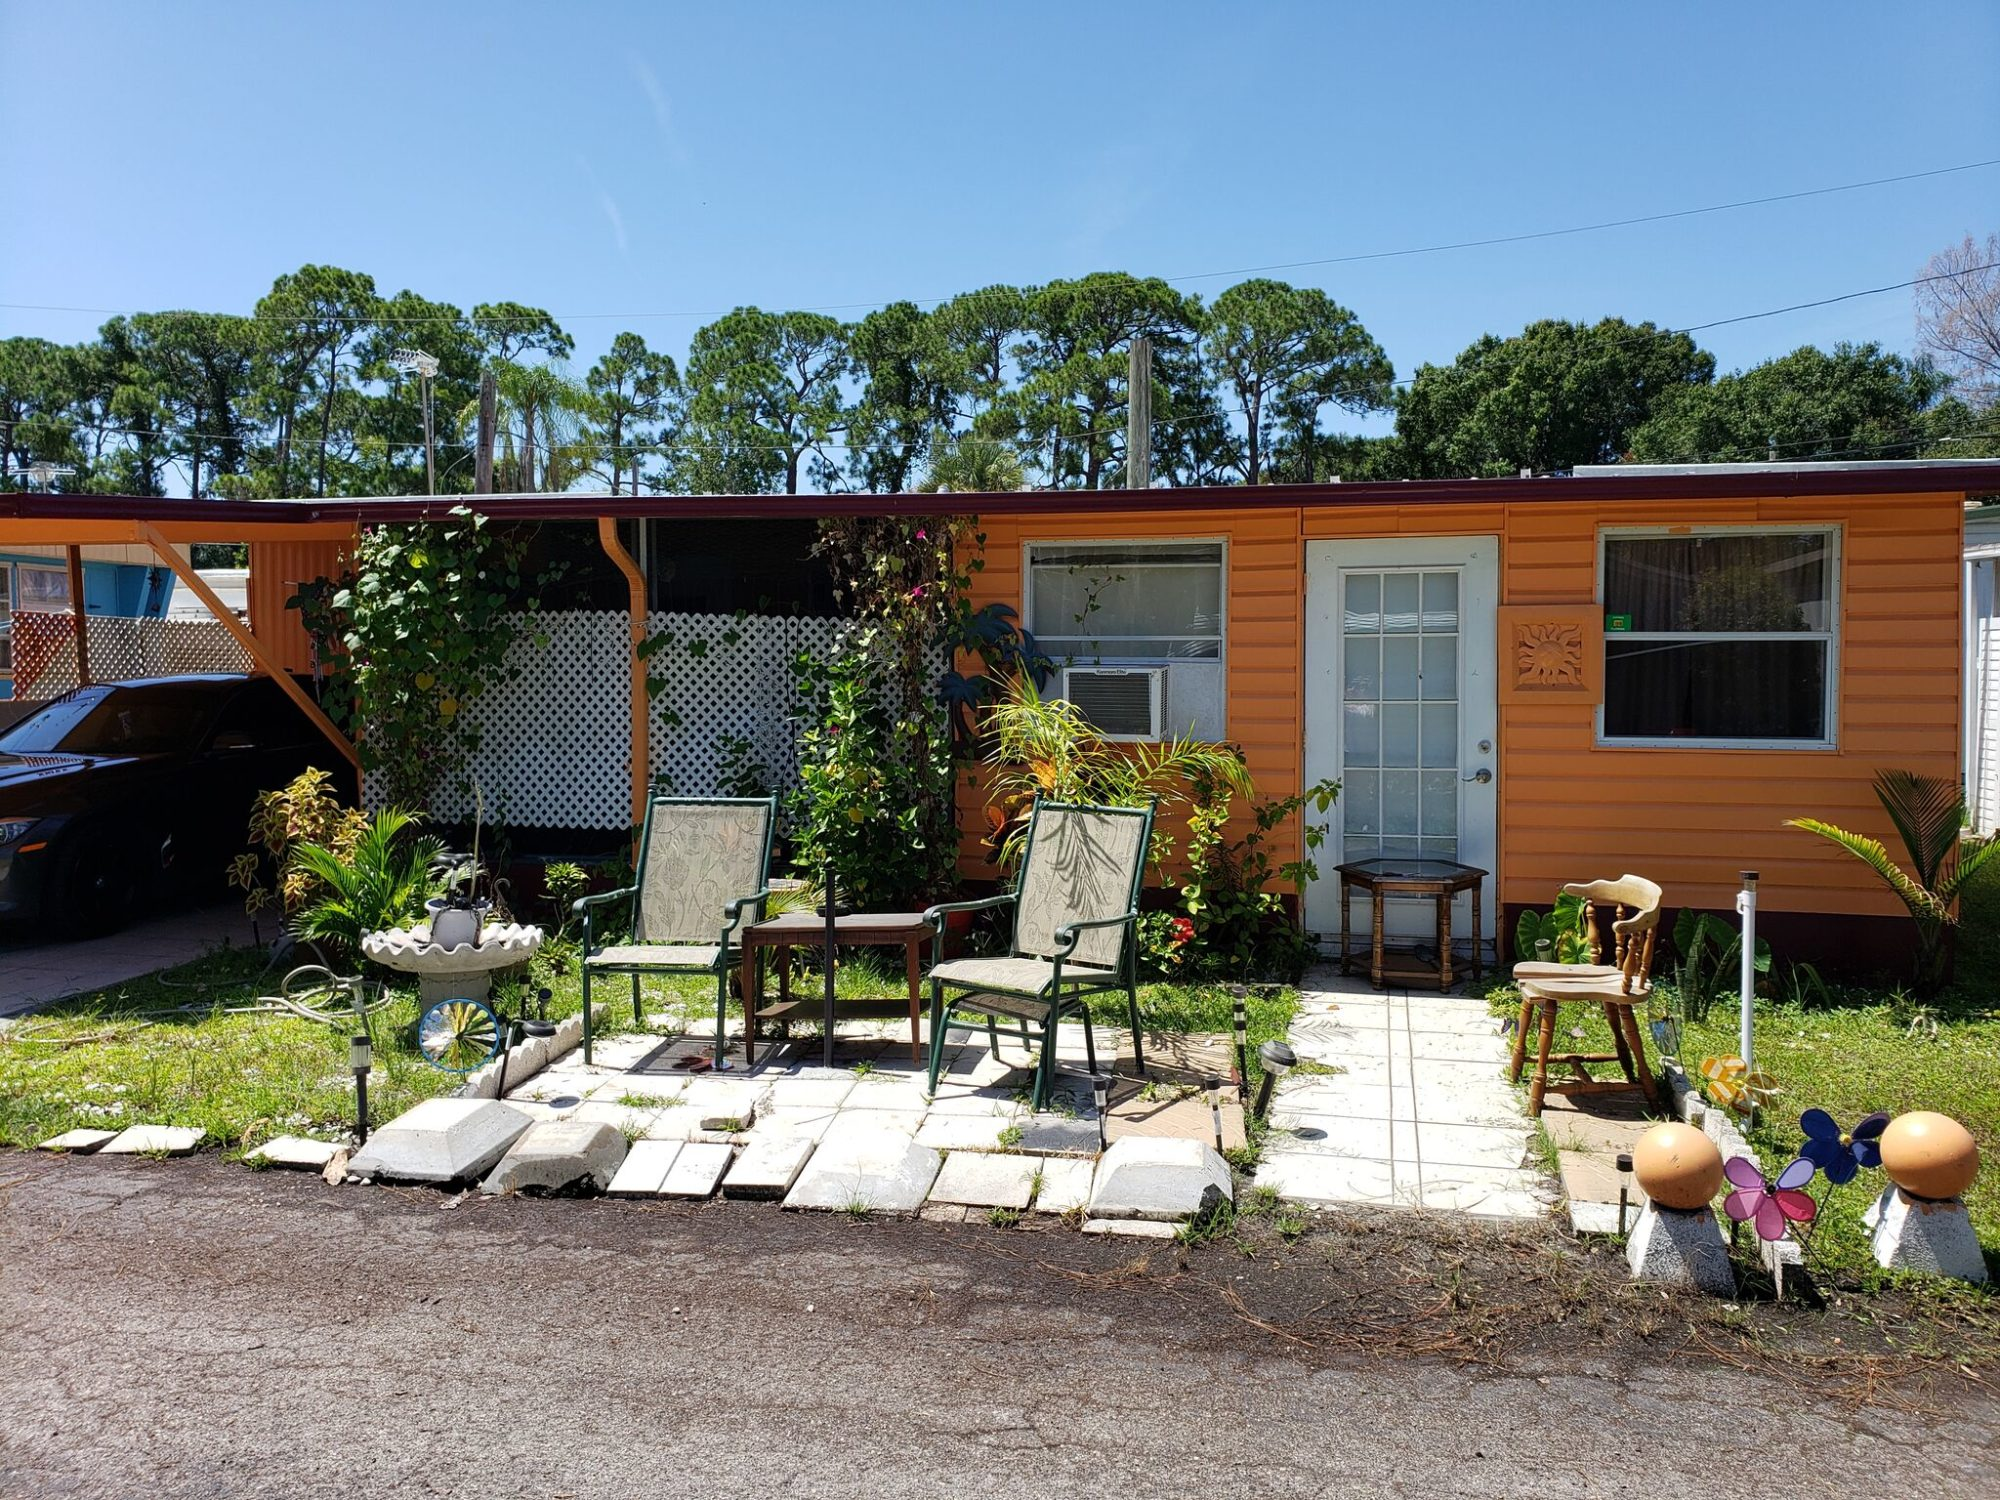 Mobile Home 2 Beds 1 Bath Integrity Mobile Home Sales